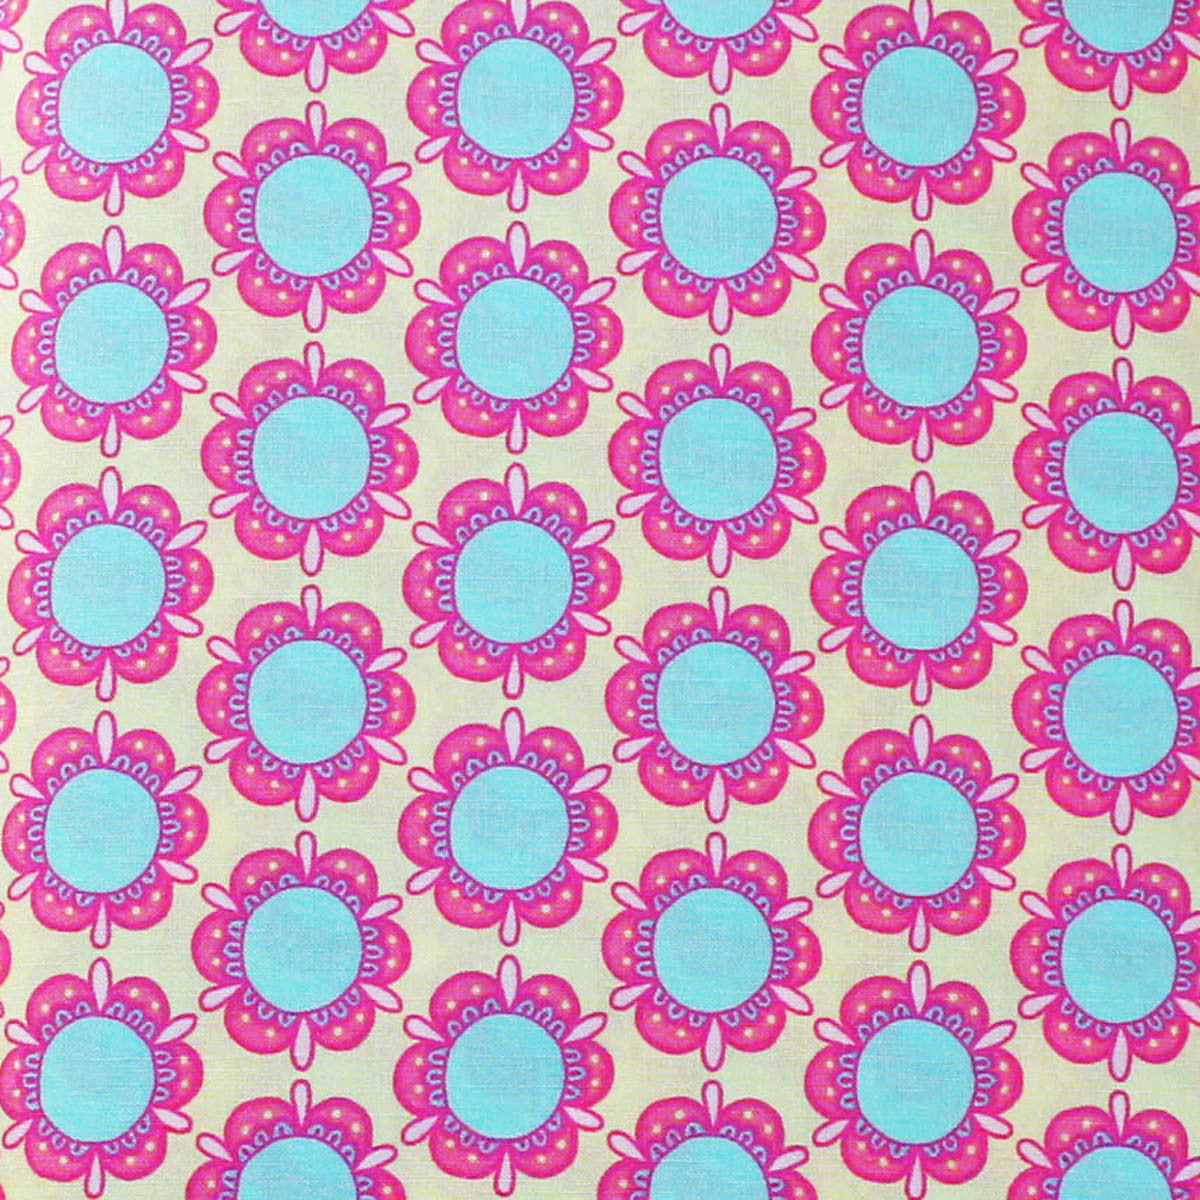 CIRCLE FLOWERS  Pink/Aqua/Yellow - Flower Child Collection by Rosalie Quinlan